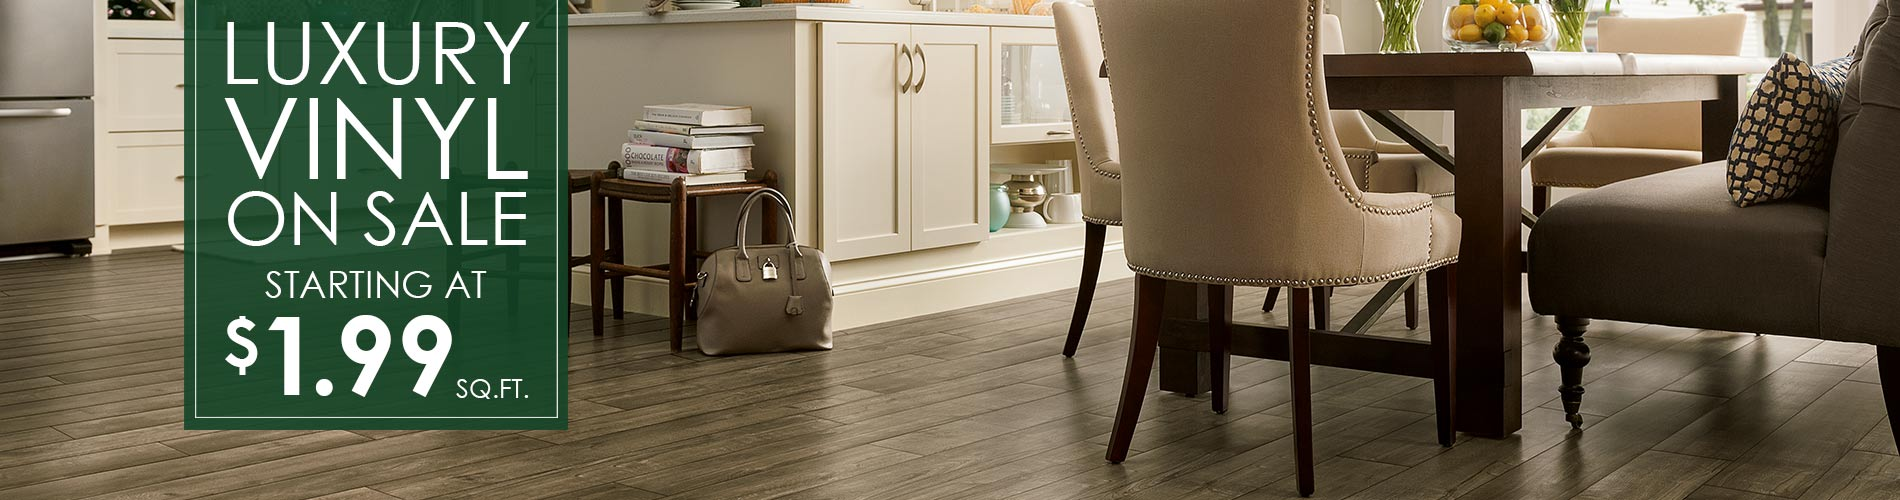 Luxury vinyl on sale starting at $1.99 sq.ft. at Not Just Carpet!